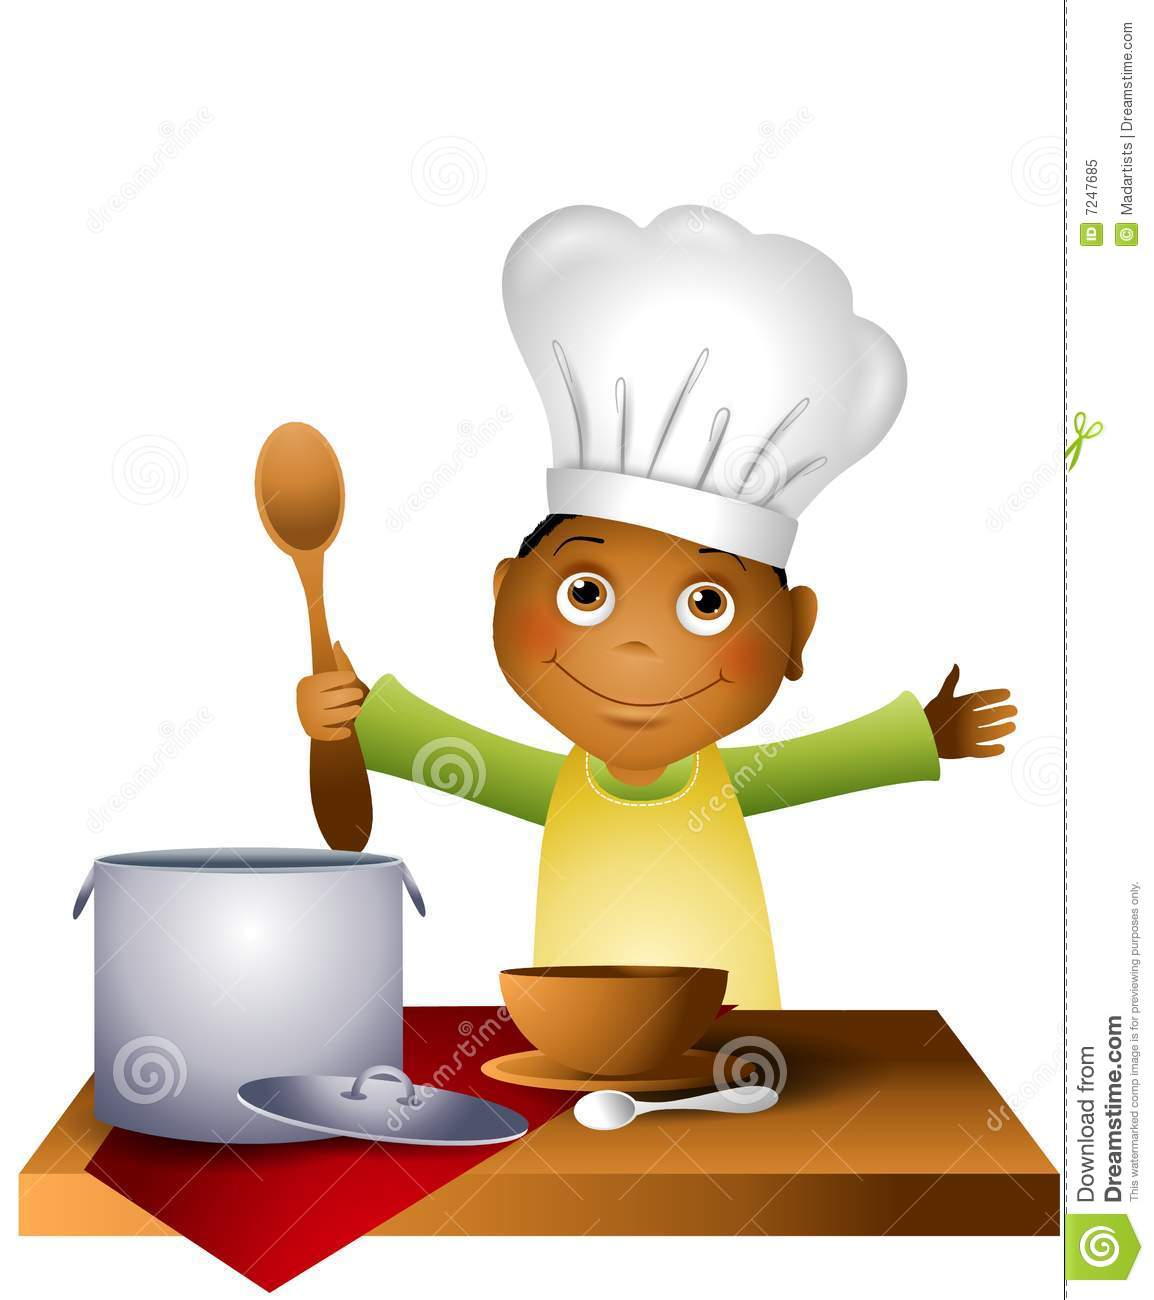 Children chef clipart. Kids cooking panda free